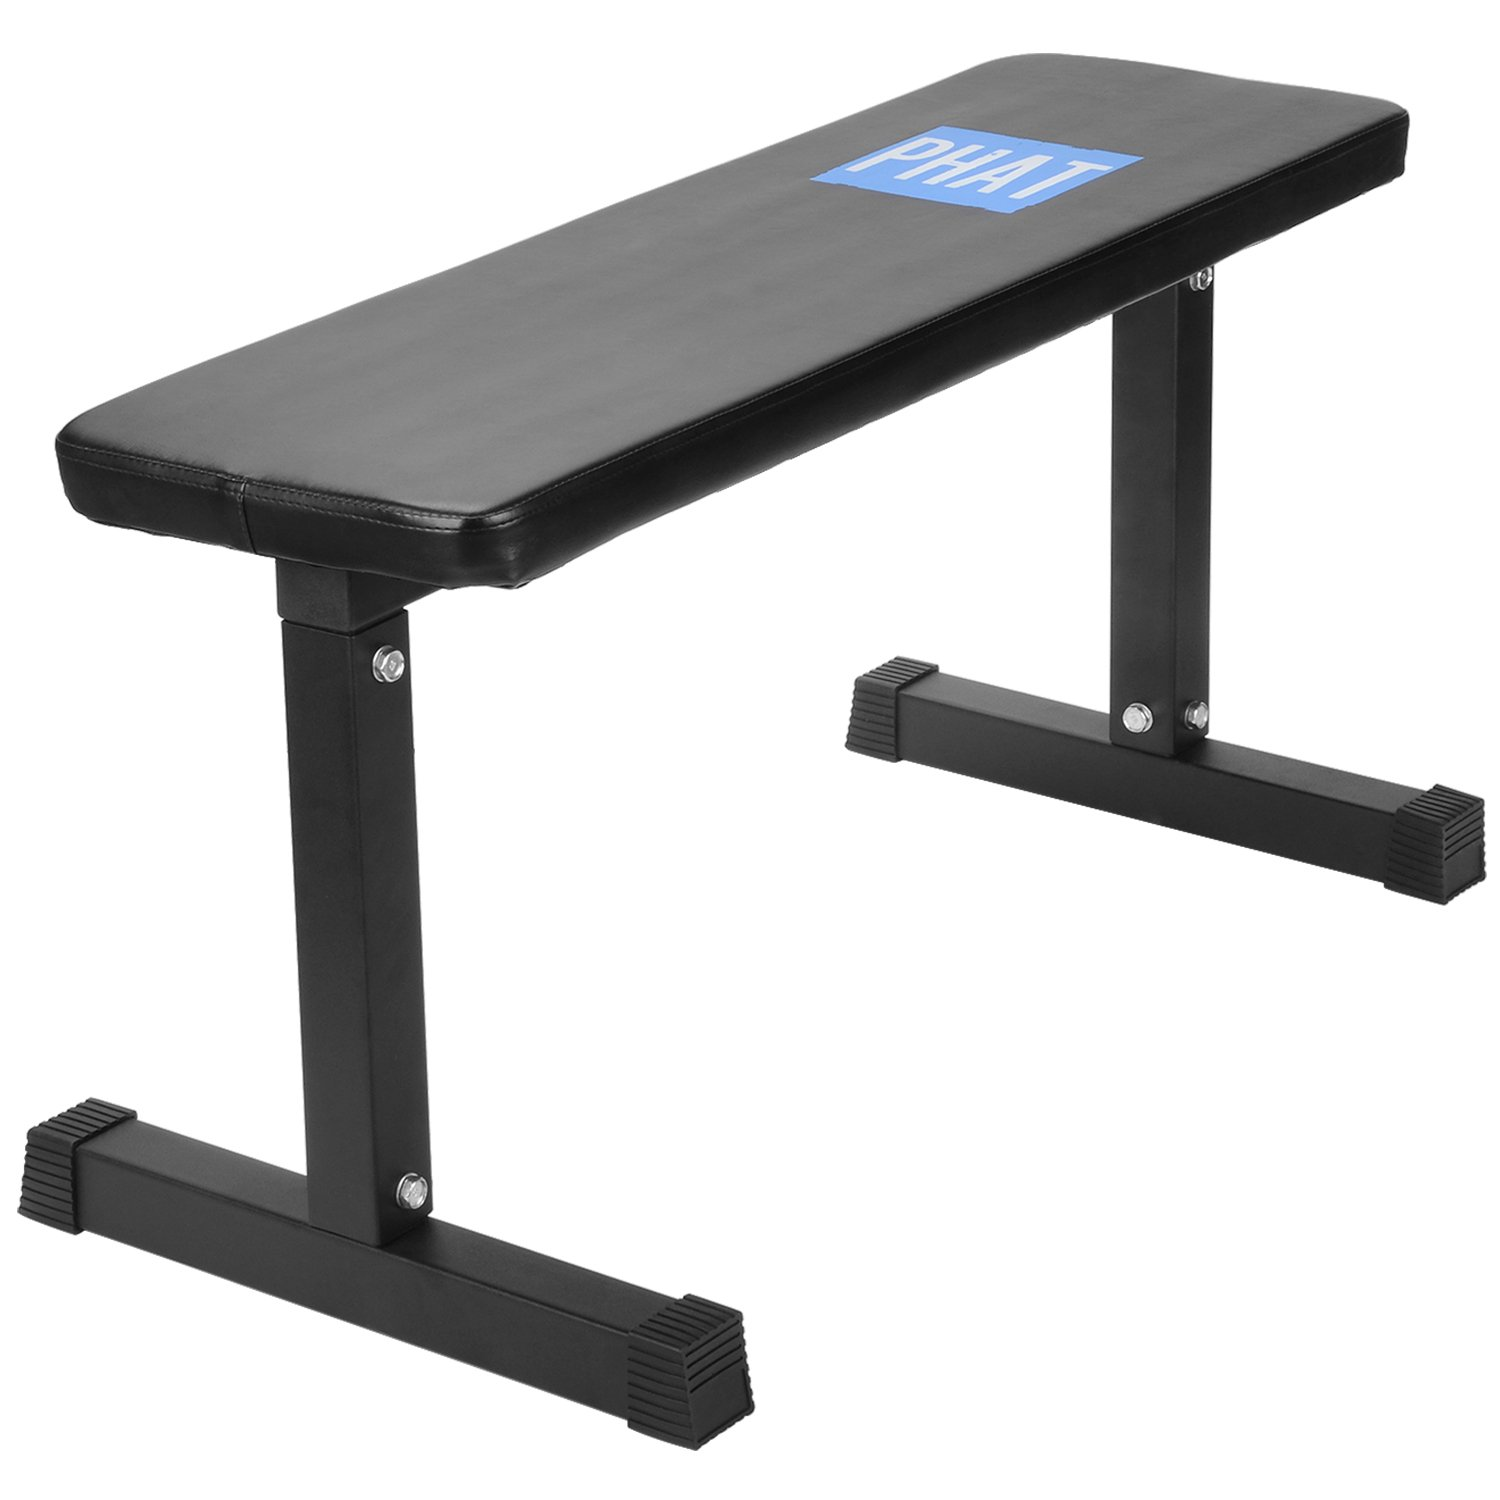 PHAT Utility Flat Weight Bench, Sit up Crunch Board Abdominal Fitness, Weight Training Abs Exercises Flat Equipment